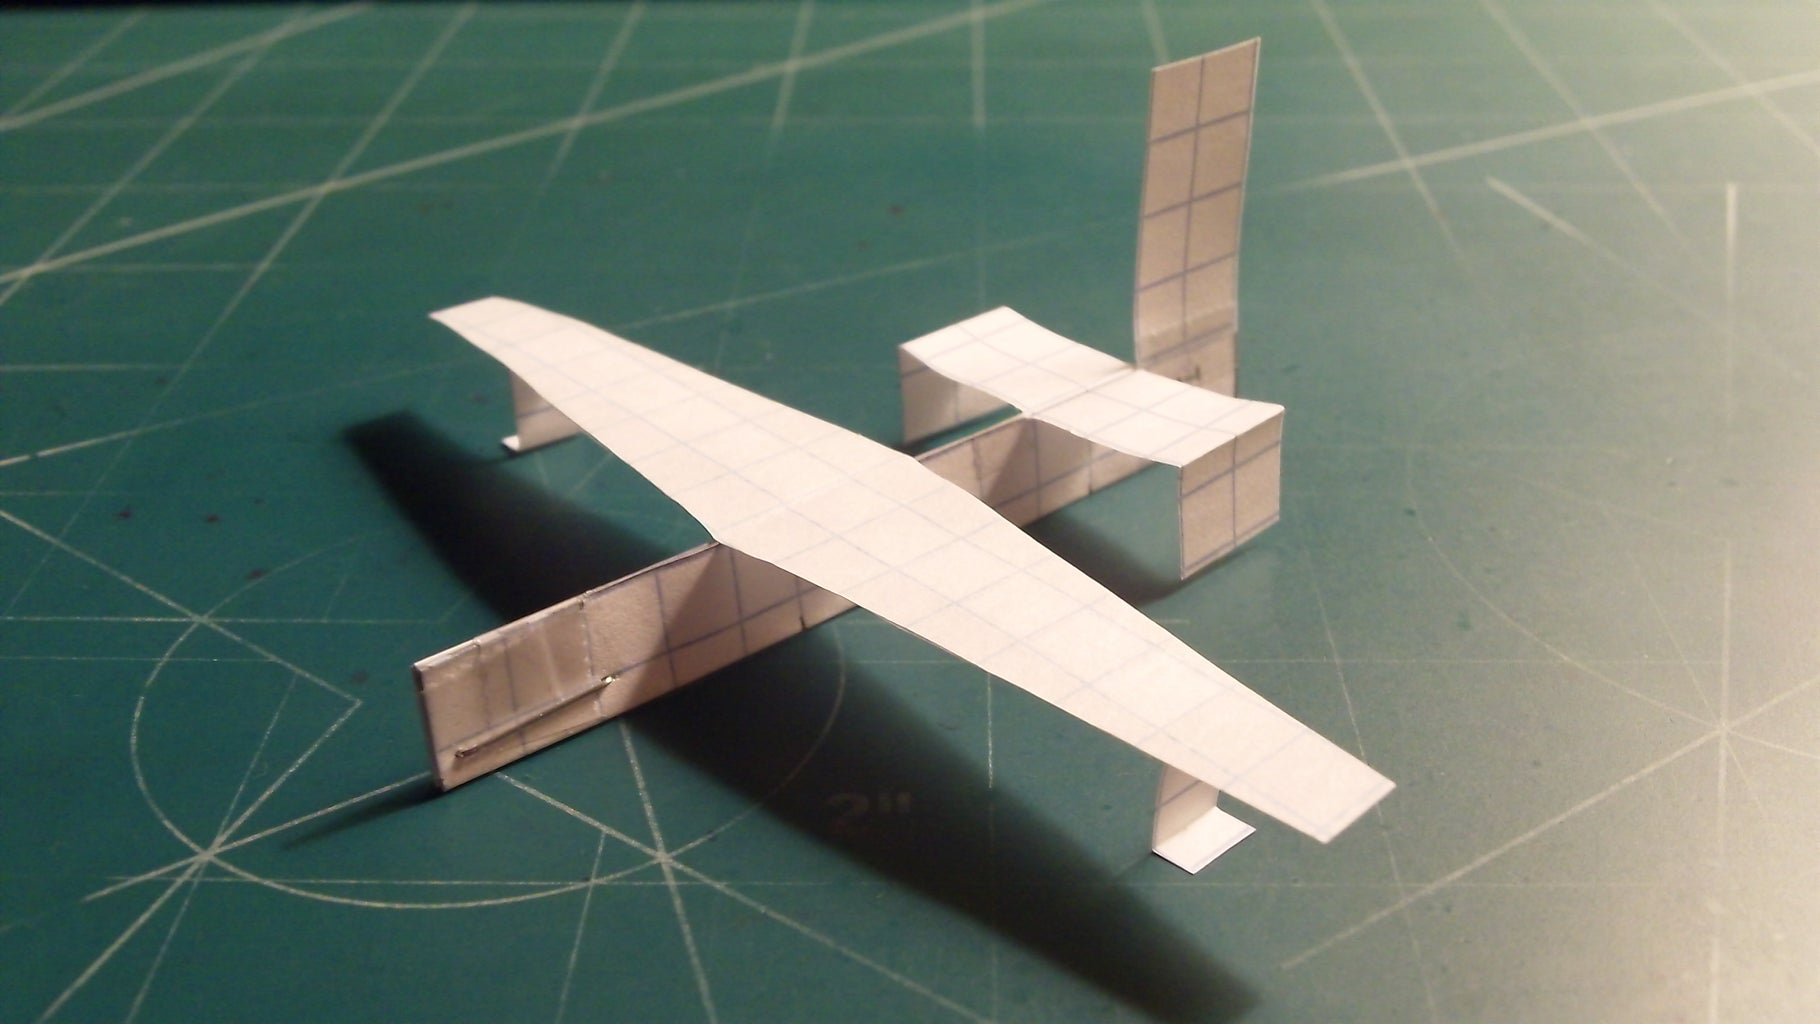 How to Make the Dragon Paper Airplane